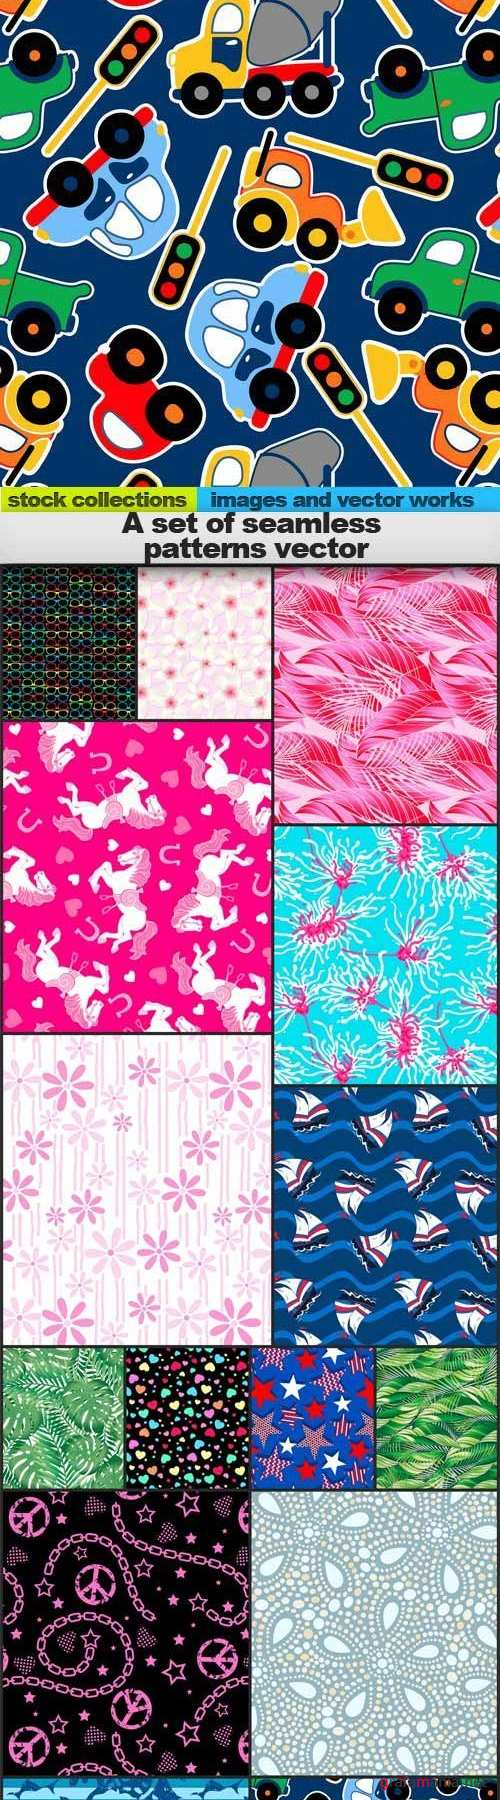 A set of seamless patterns vector, 15 x EPS